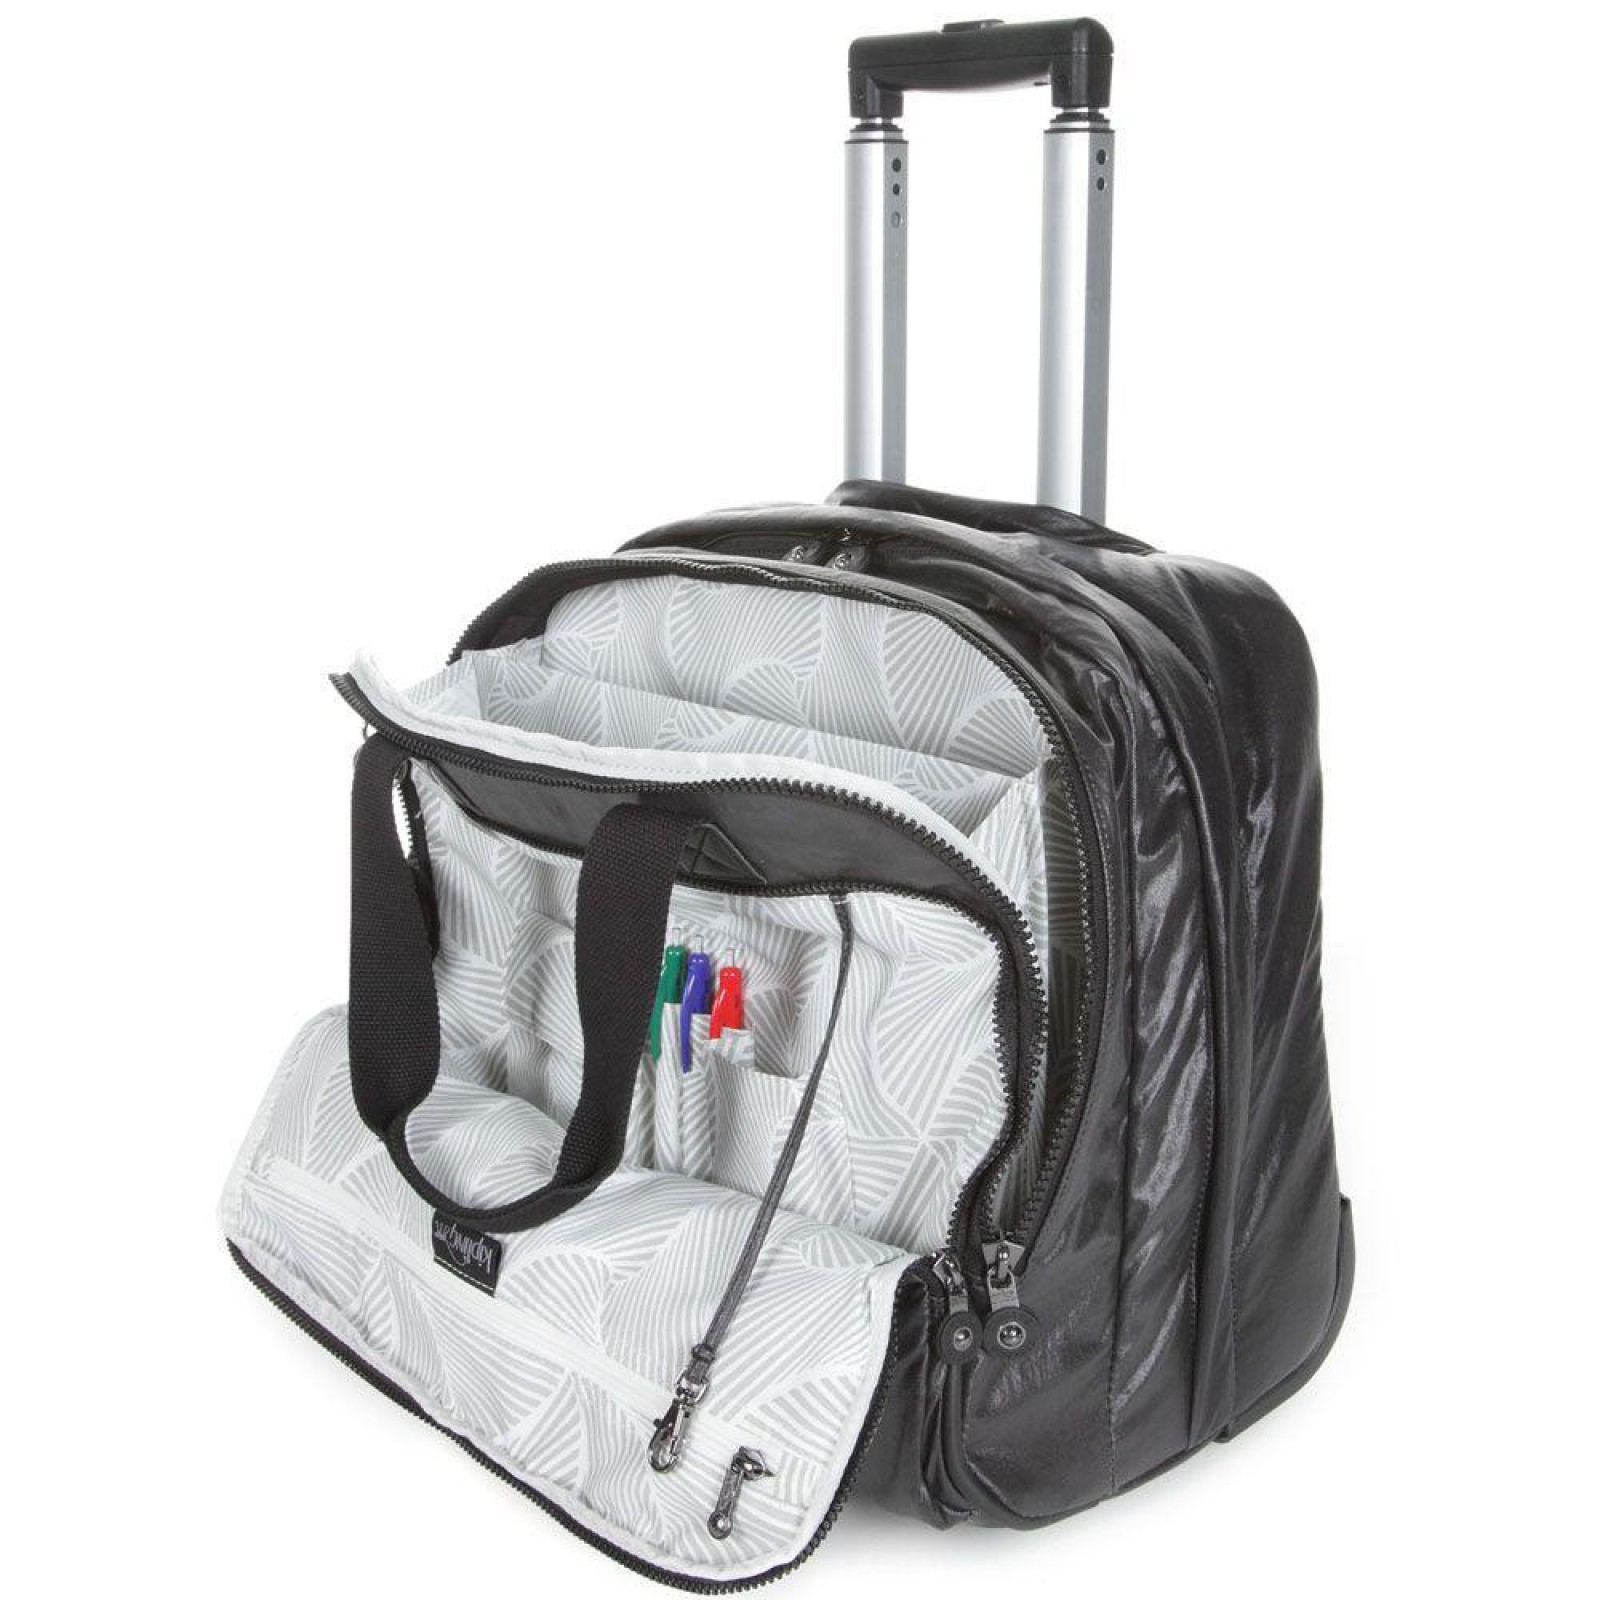 84cce9147d Kipling New Ceroc Wheeled Carry-On • WL4795-022 • Luggage World MN